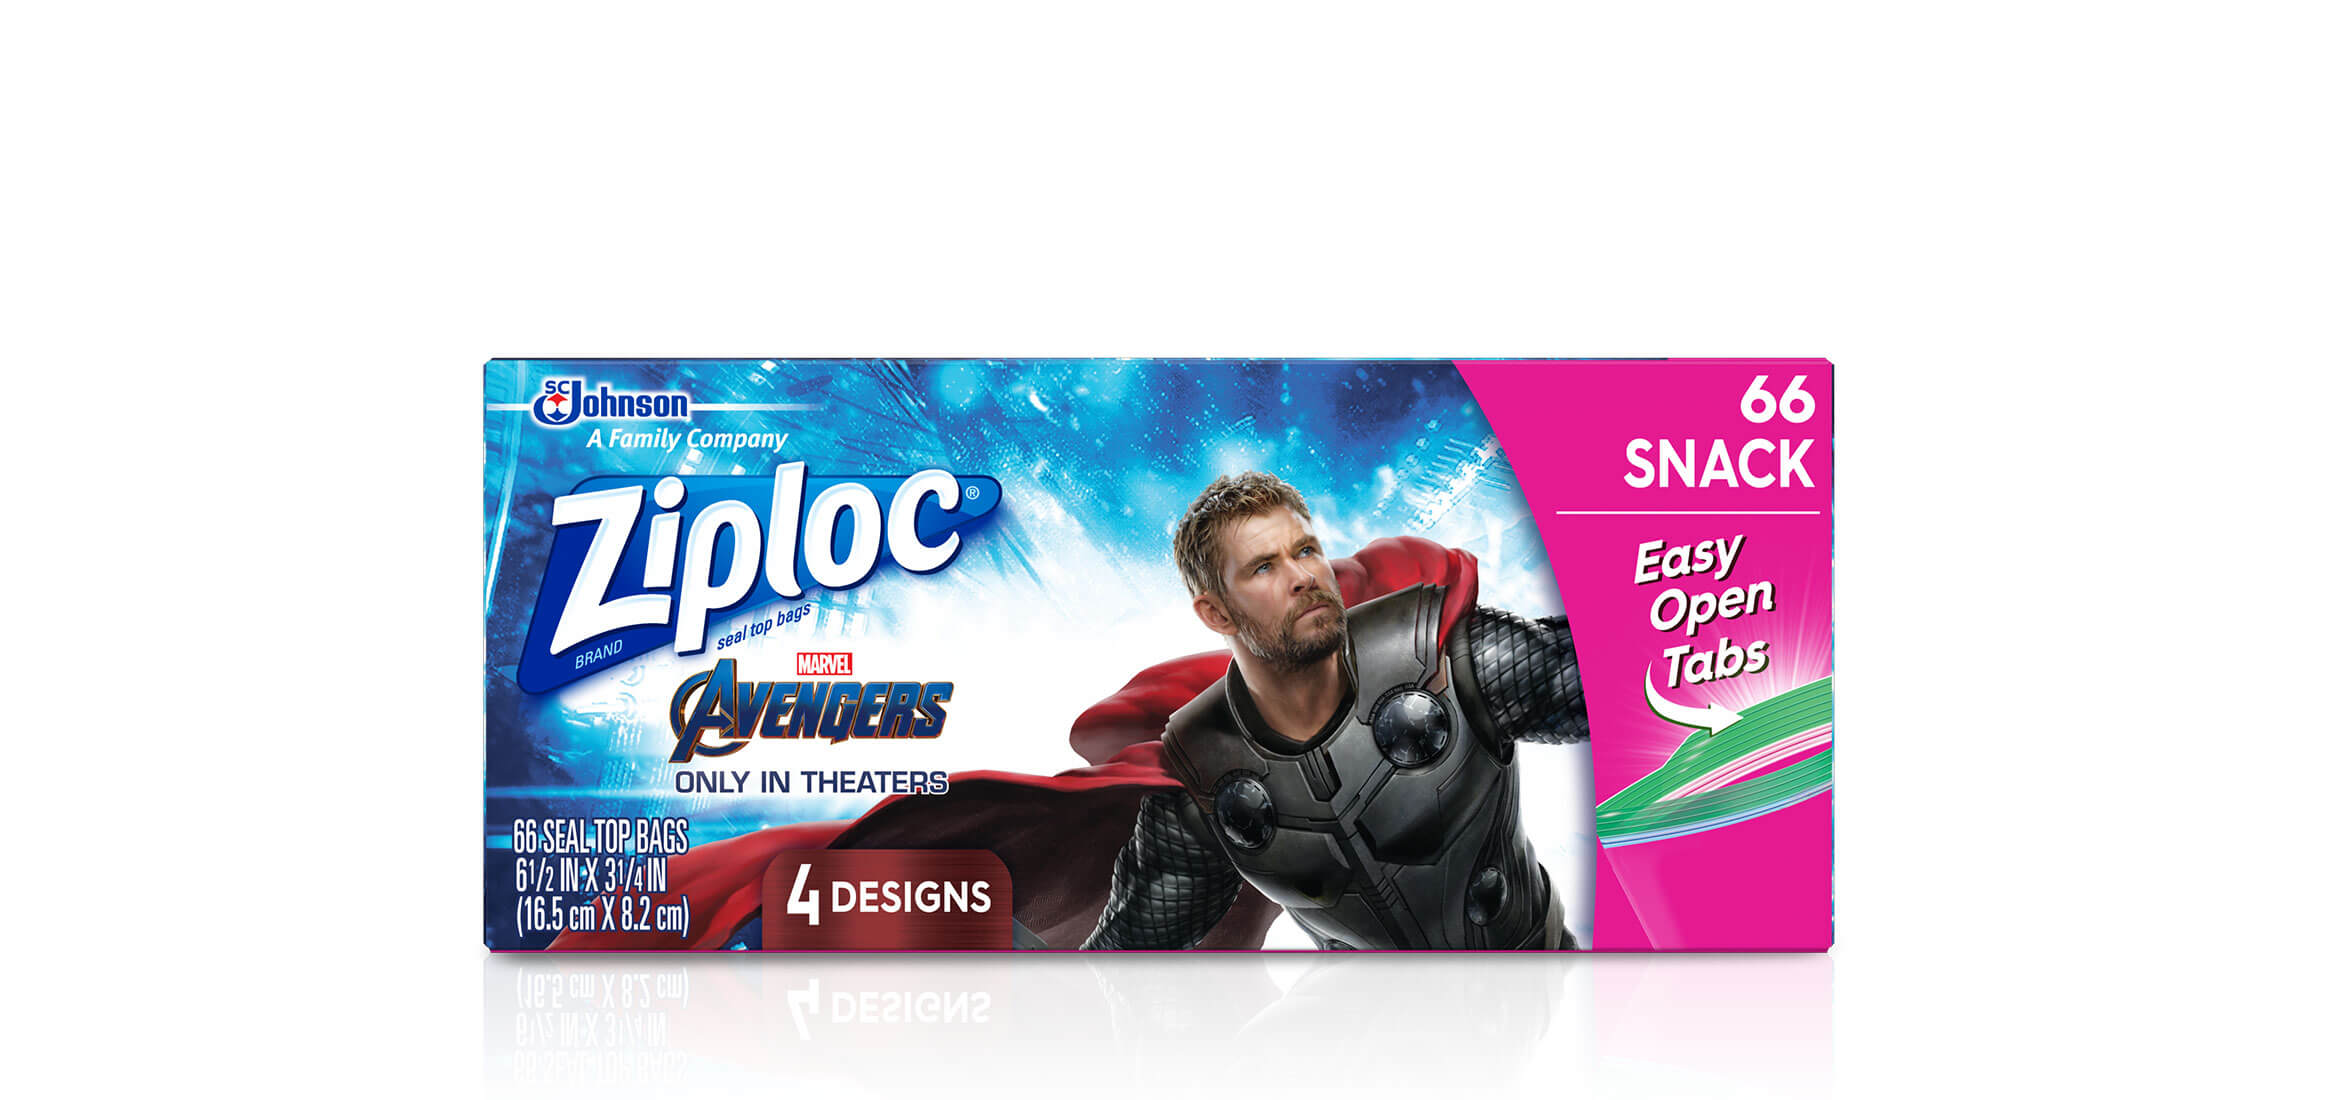 Avengers-US-Bag-Snack-Hero-2X